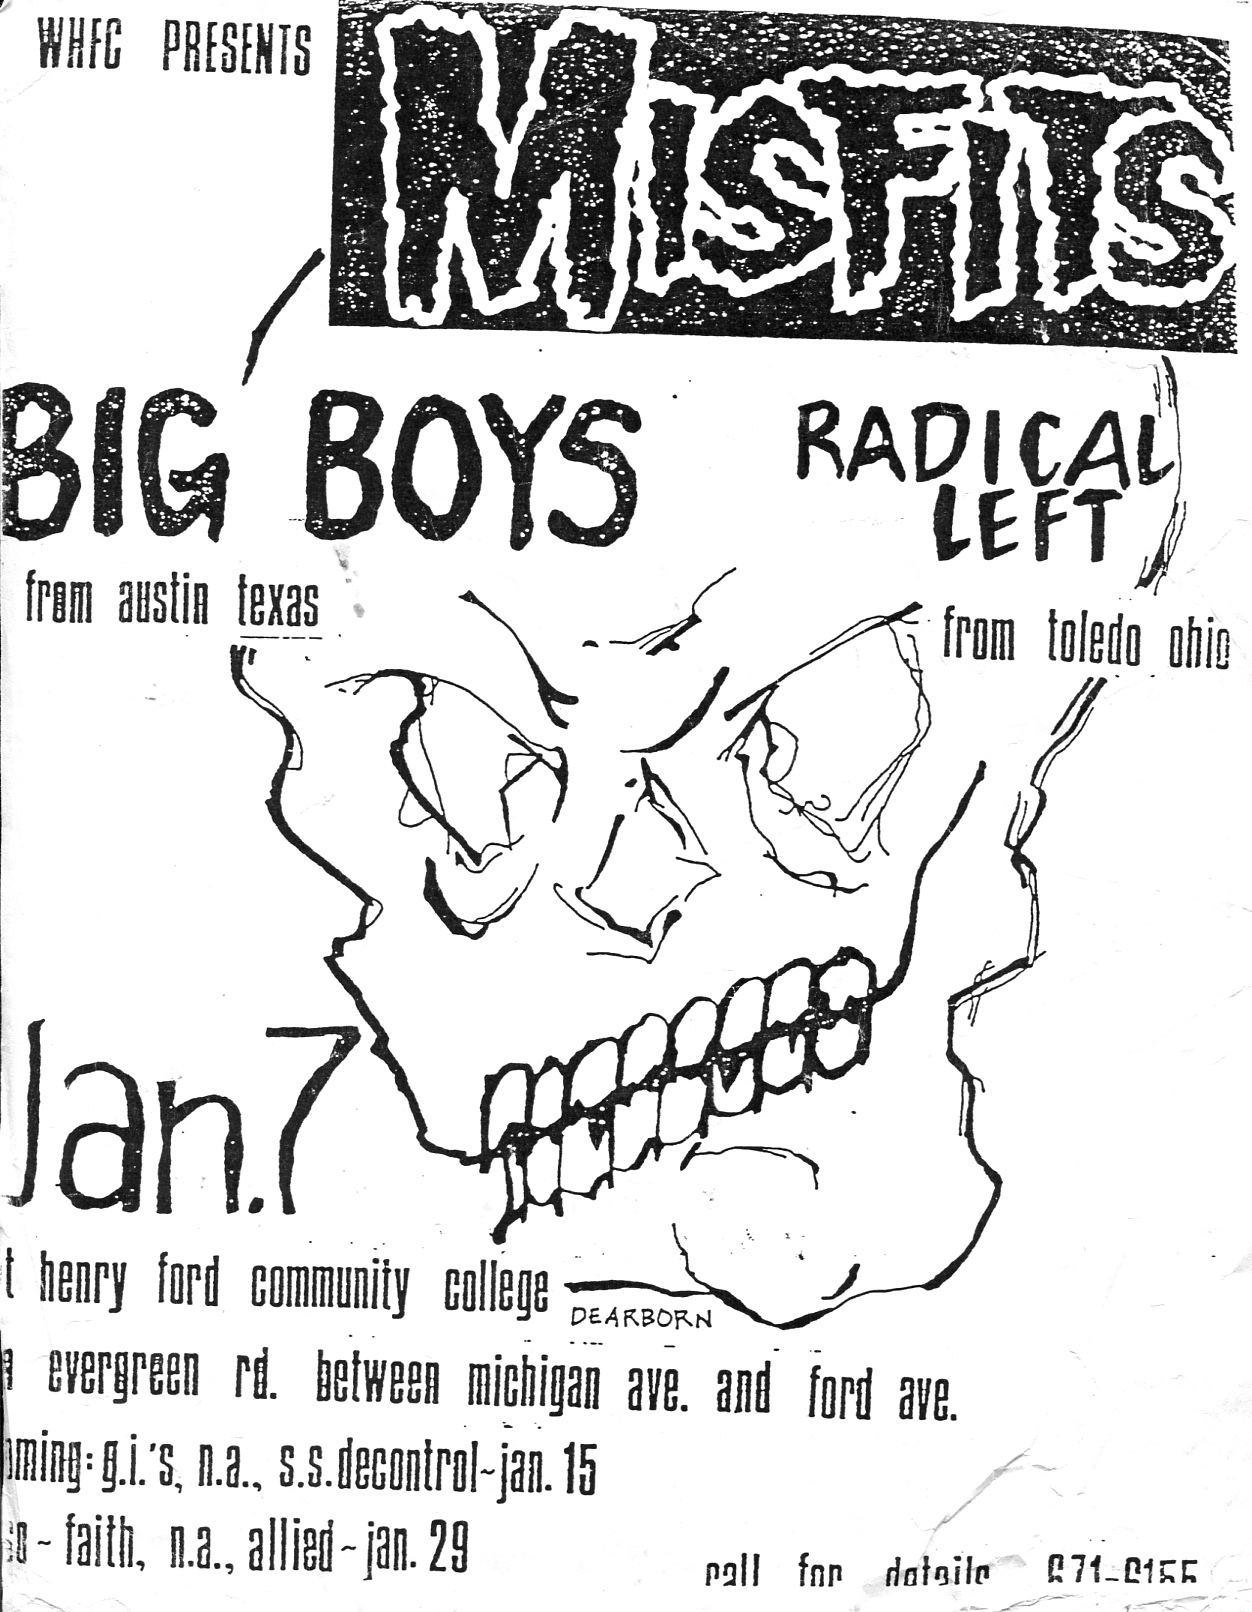 Misfits-Radical Left-Big Boys @ Henry Ford CC Dearborn MI 1-7-83